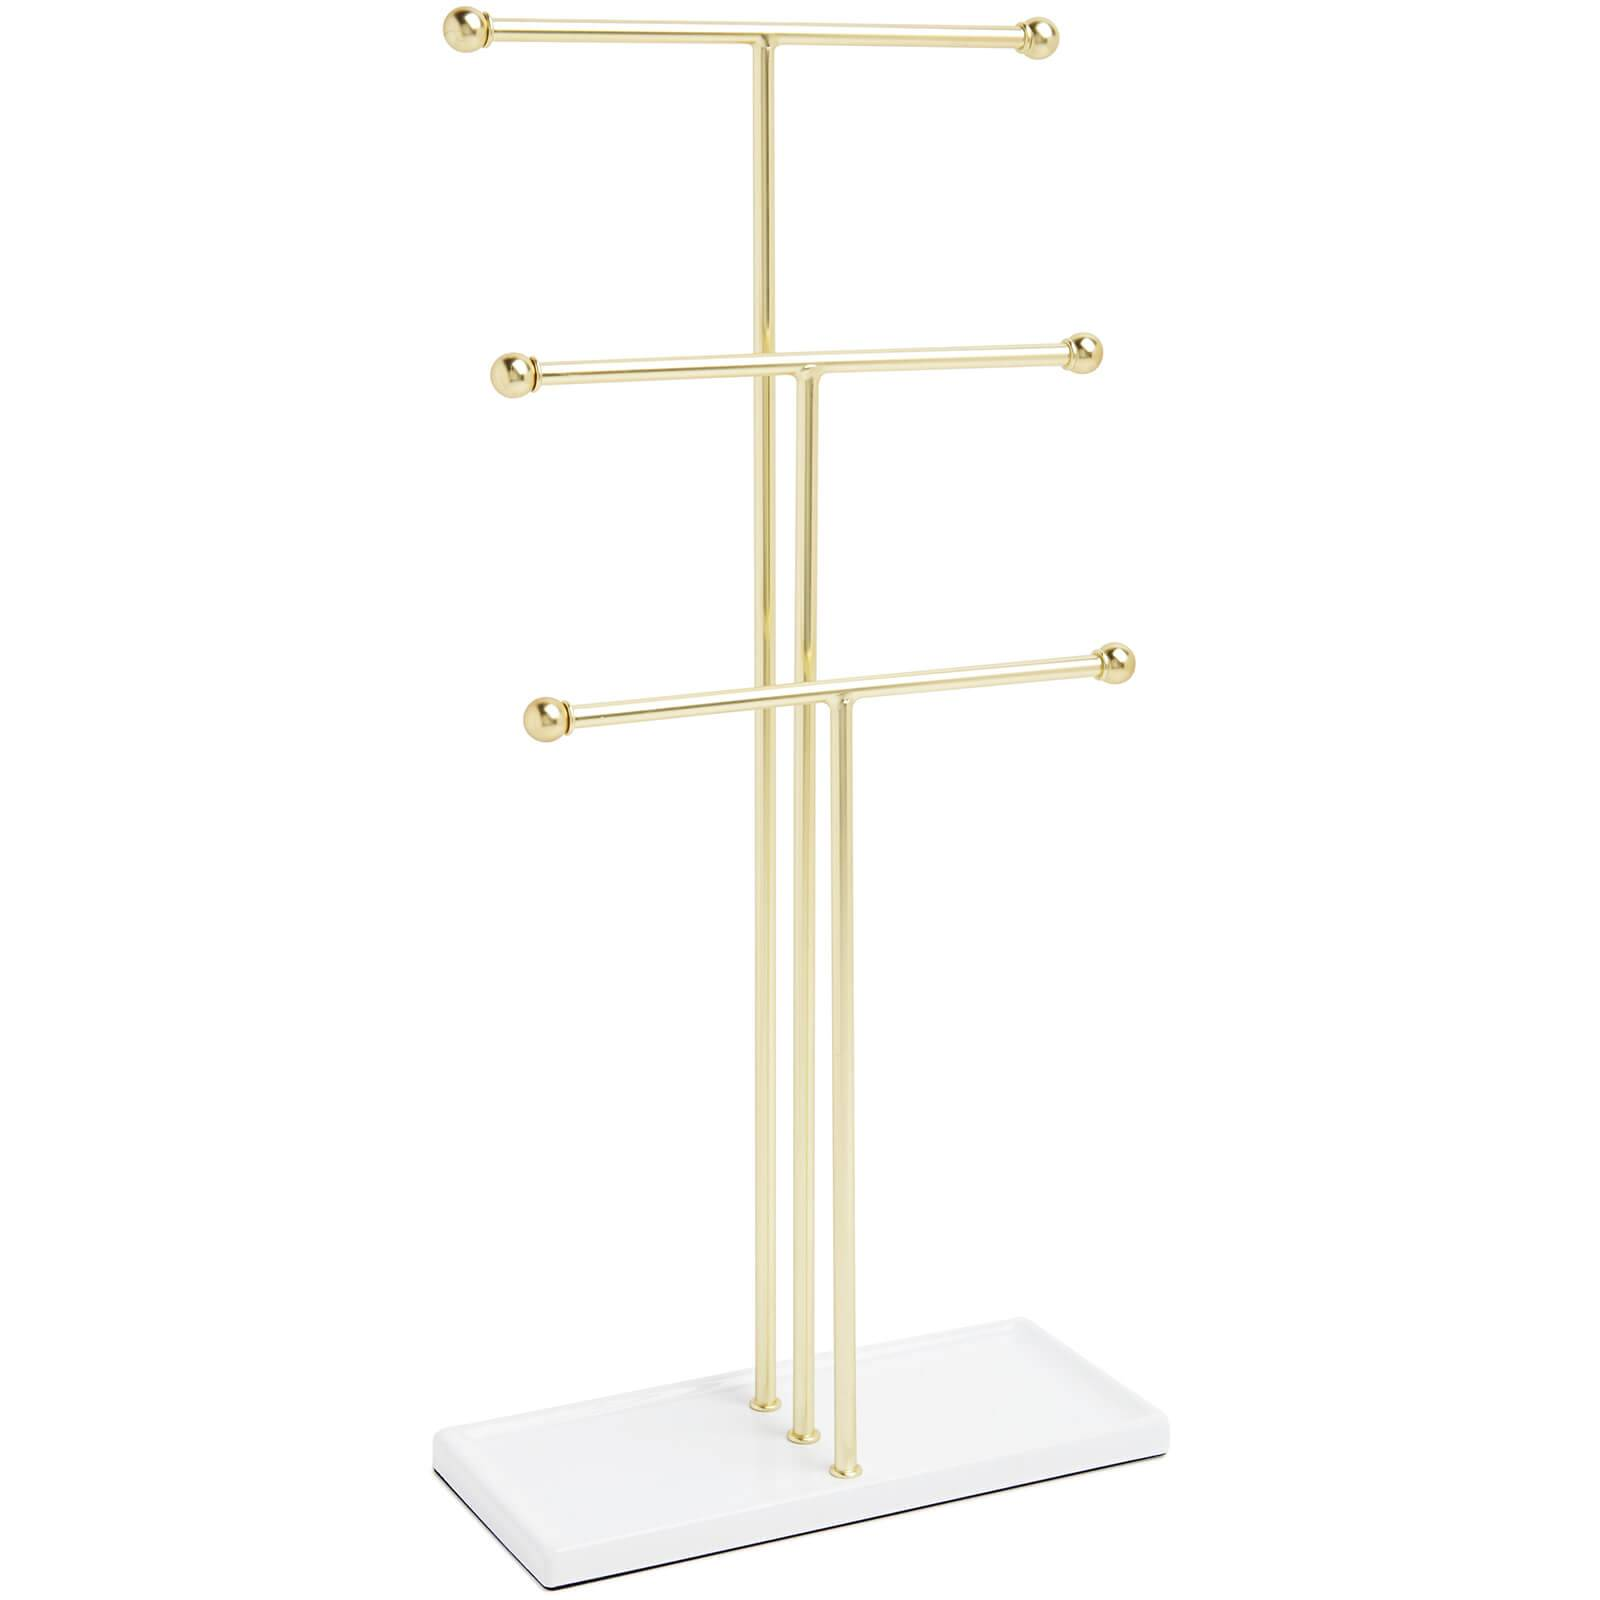 Umbra Trigem Jewellery Stand - White/Brass